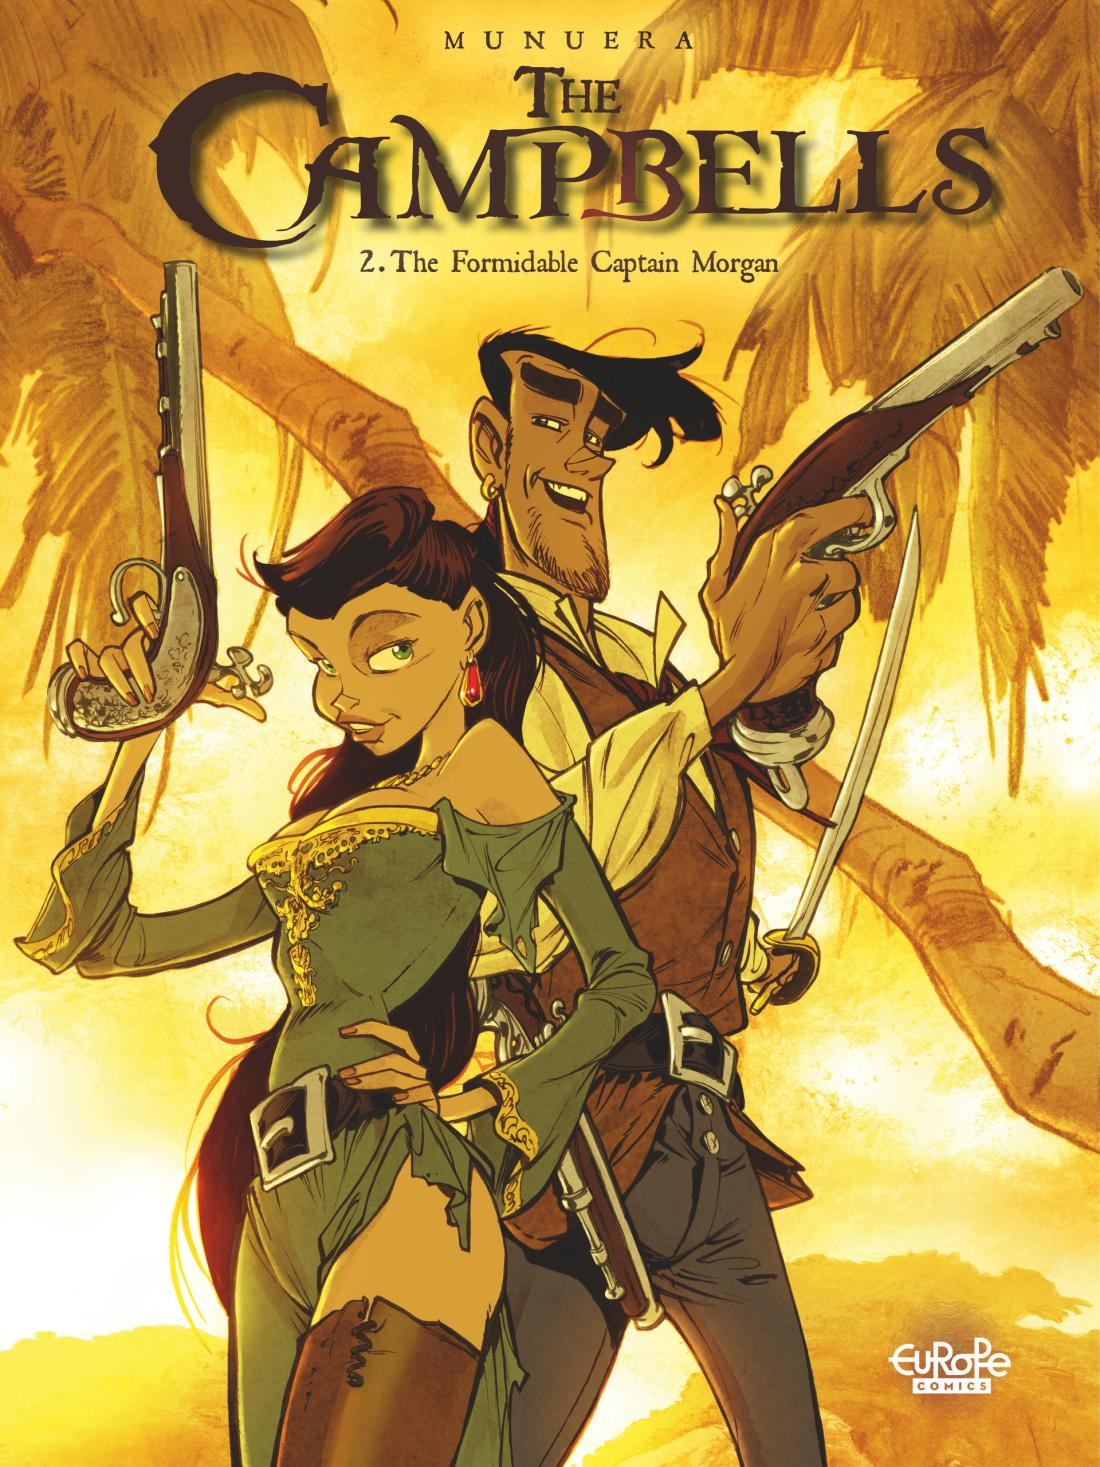 The Campbells 2 - cover